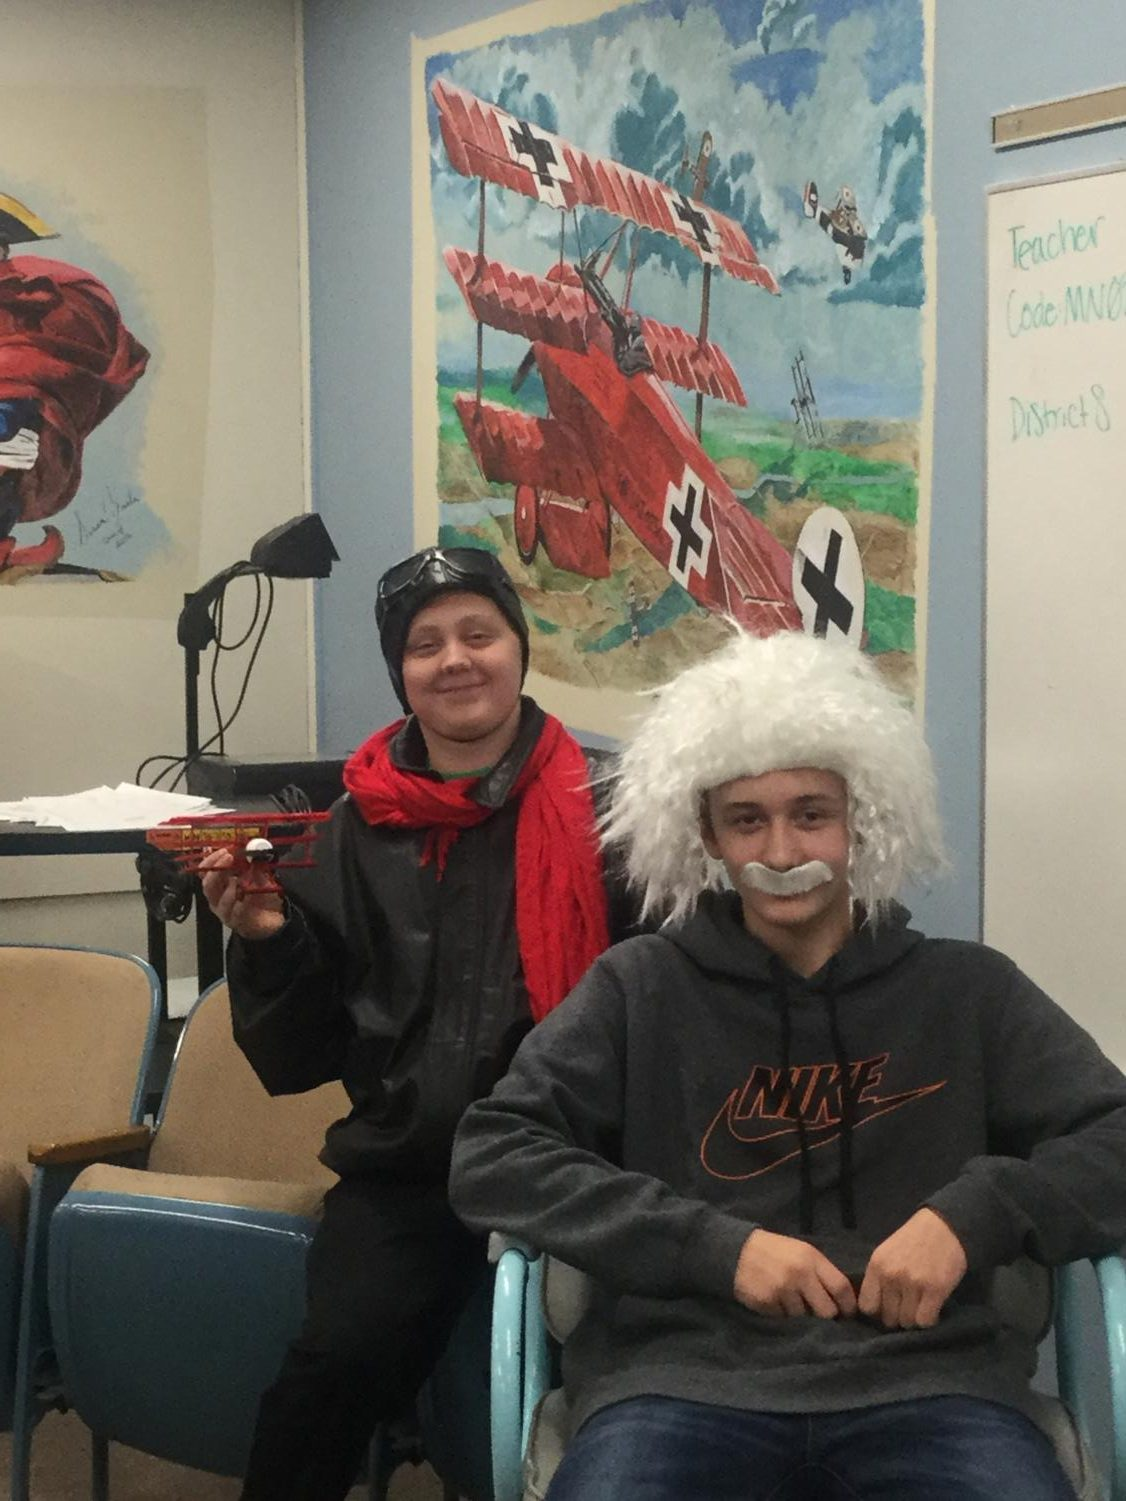 Collin Wilson (left) dressed as the World War I Ace Red Baron and Austin Brandon (right) portraying Albert Einstein.